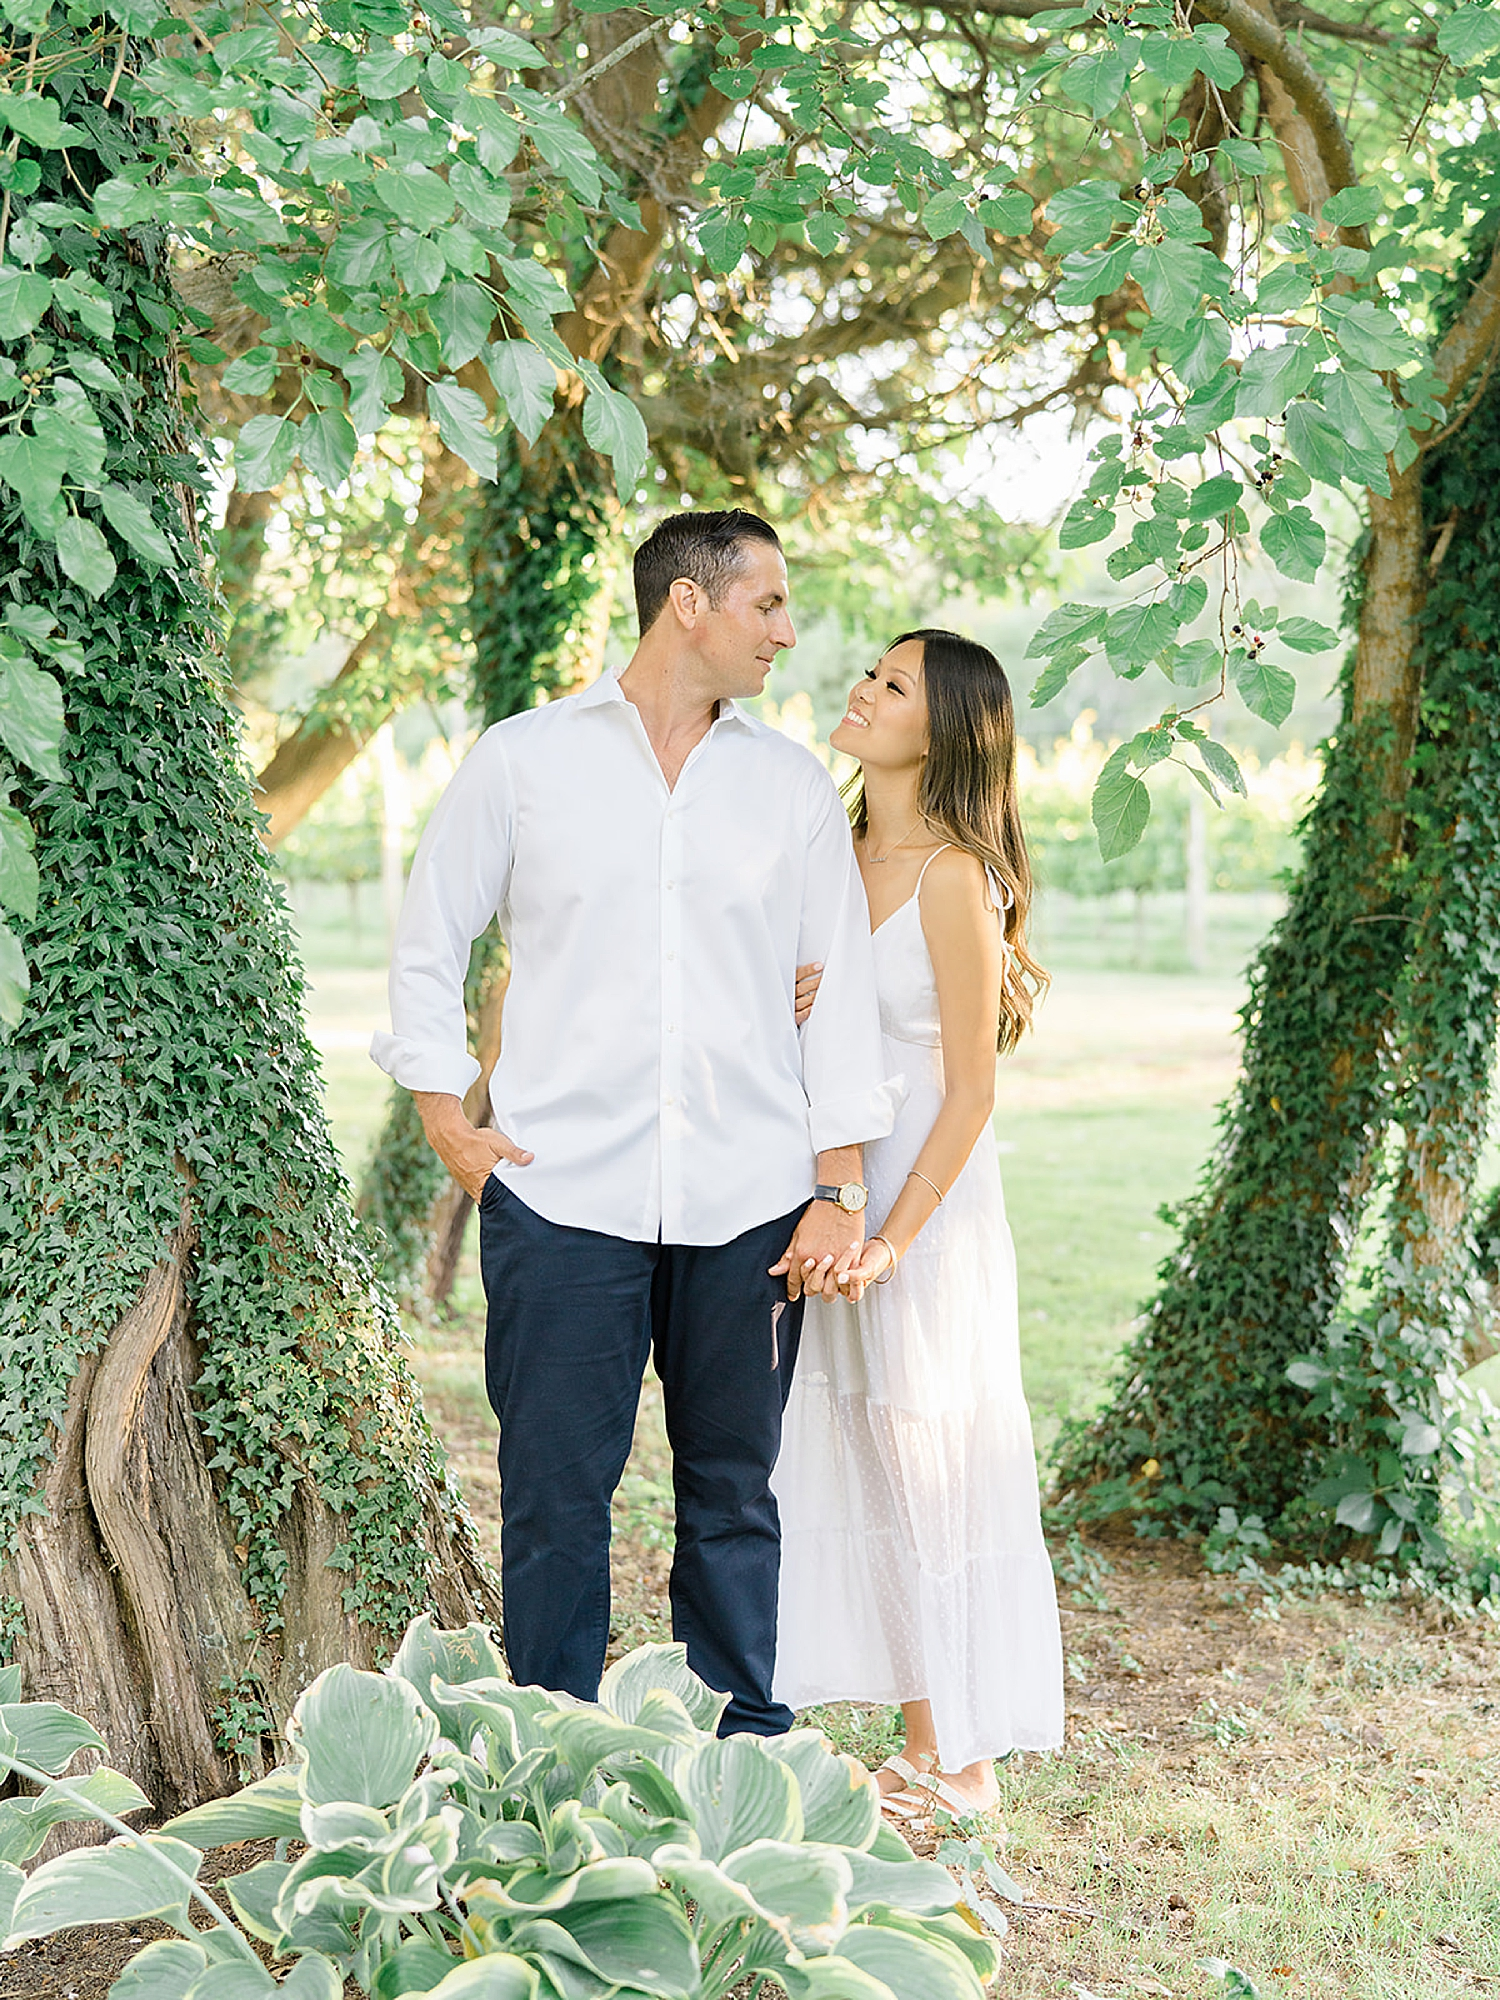 Willow Creek Winery New Jersey Engagement Photography by Magdalena Studios 0001